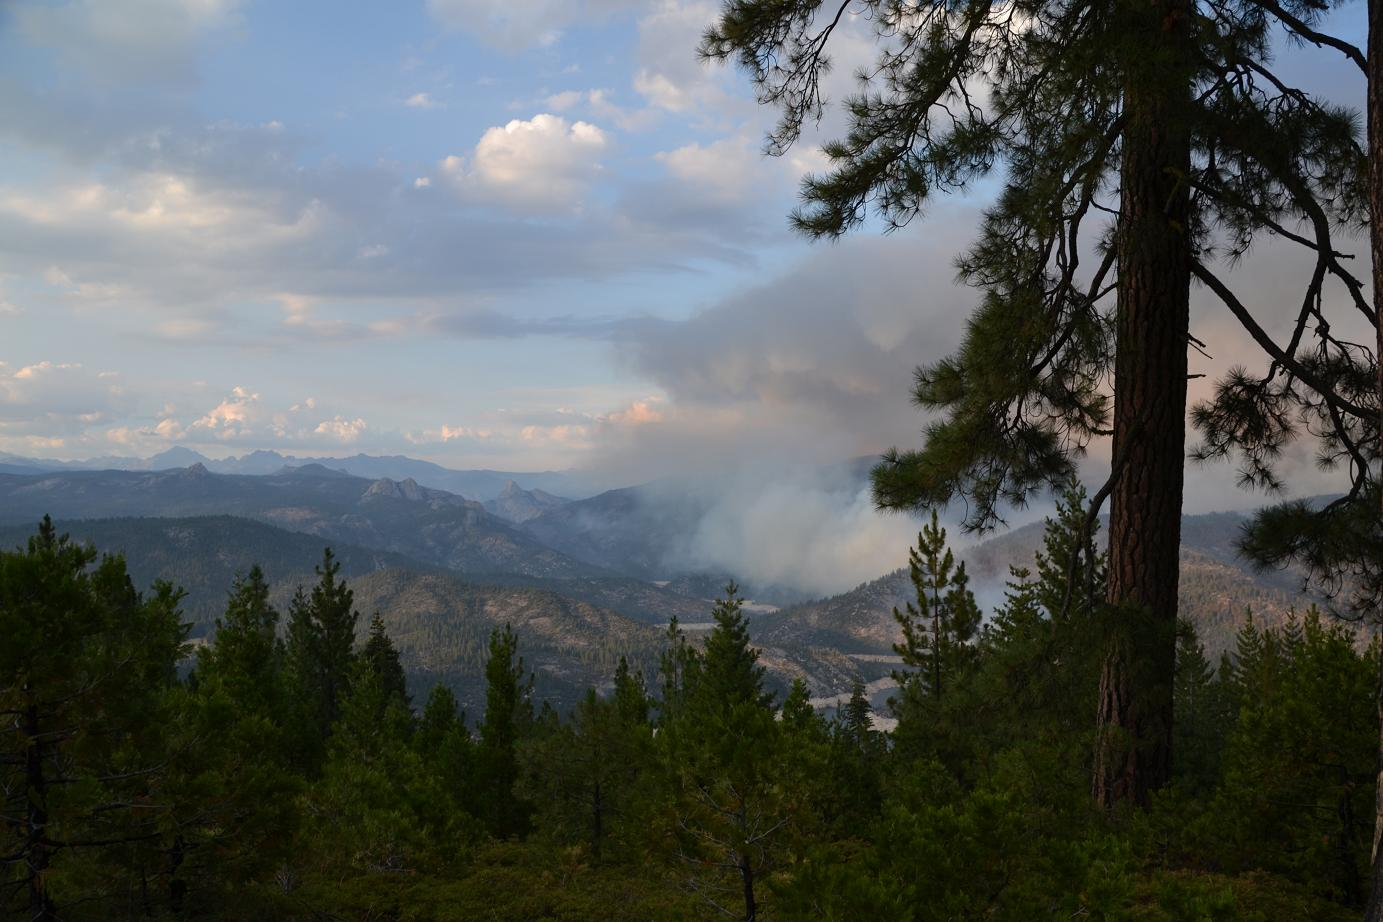 Northern part of fire from Mile High - photo Gina Clugston